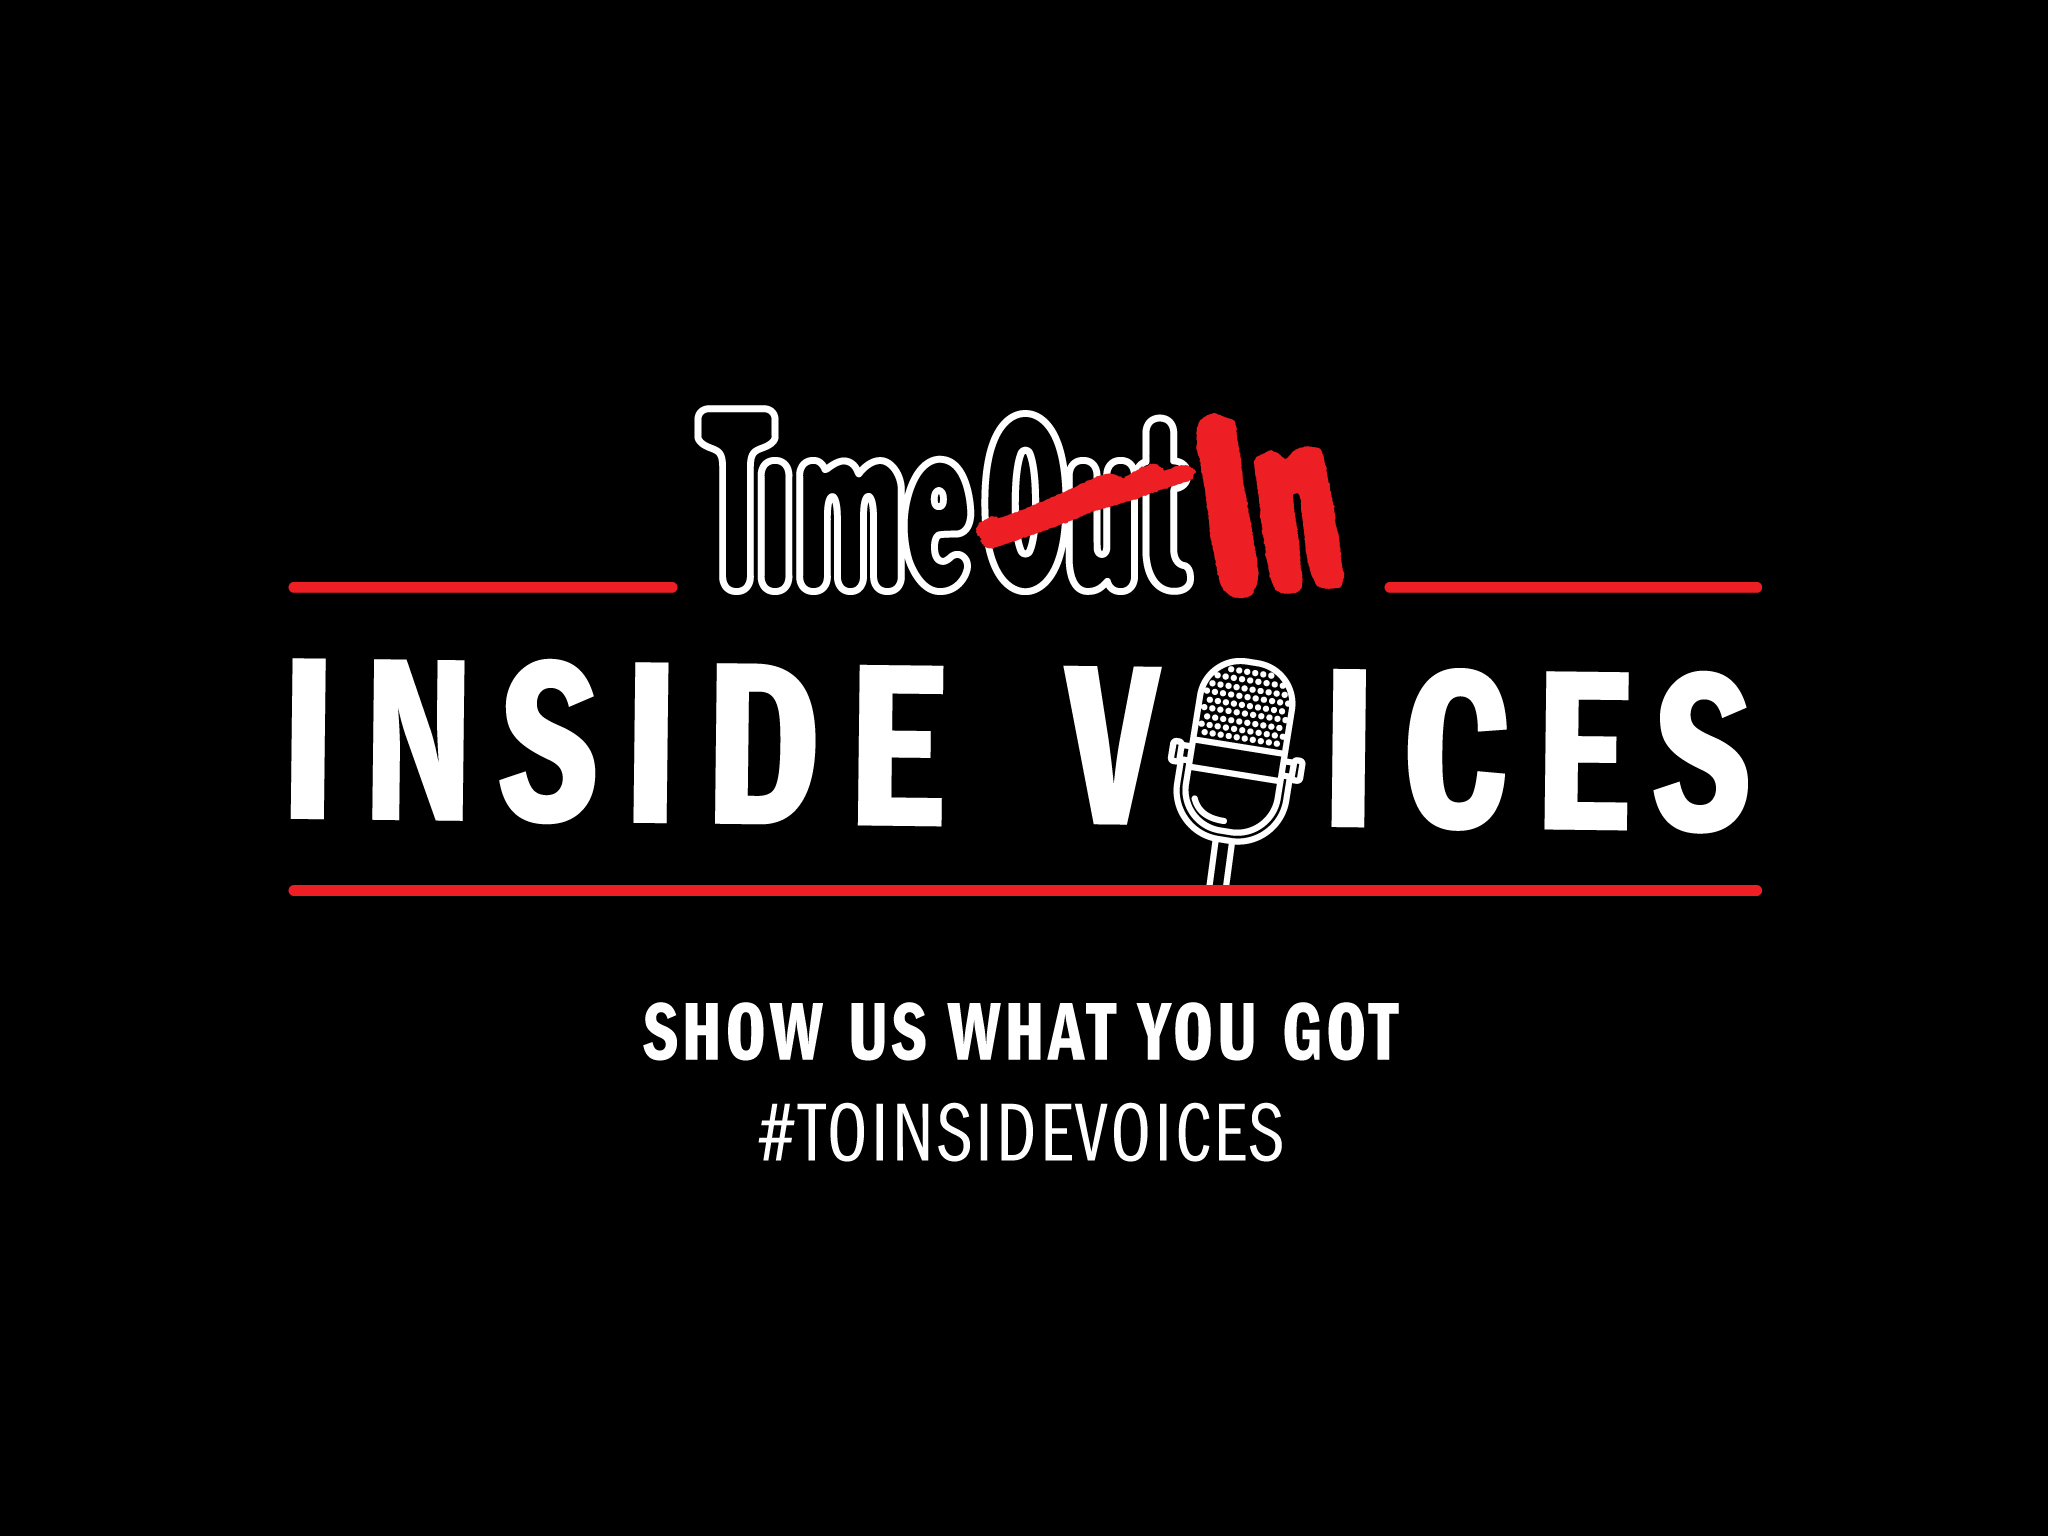 Introducing Inside Voices, Time Out's talent search